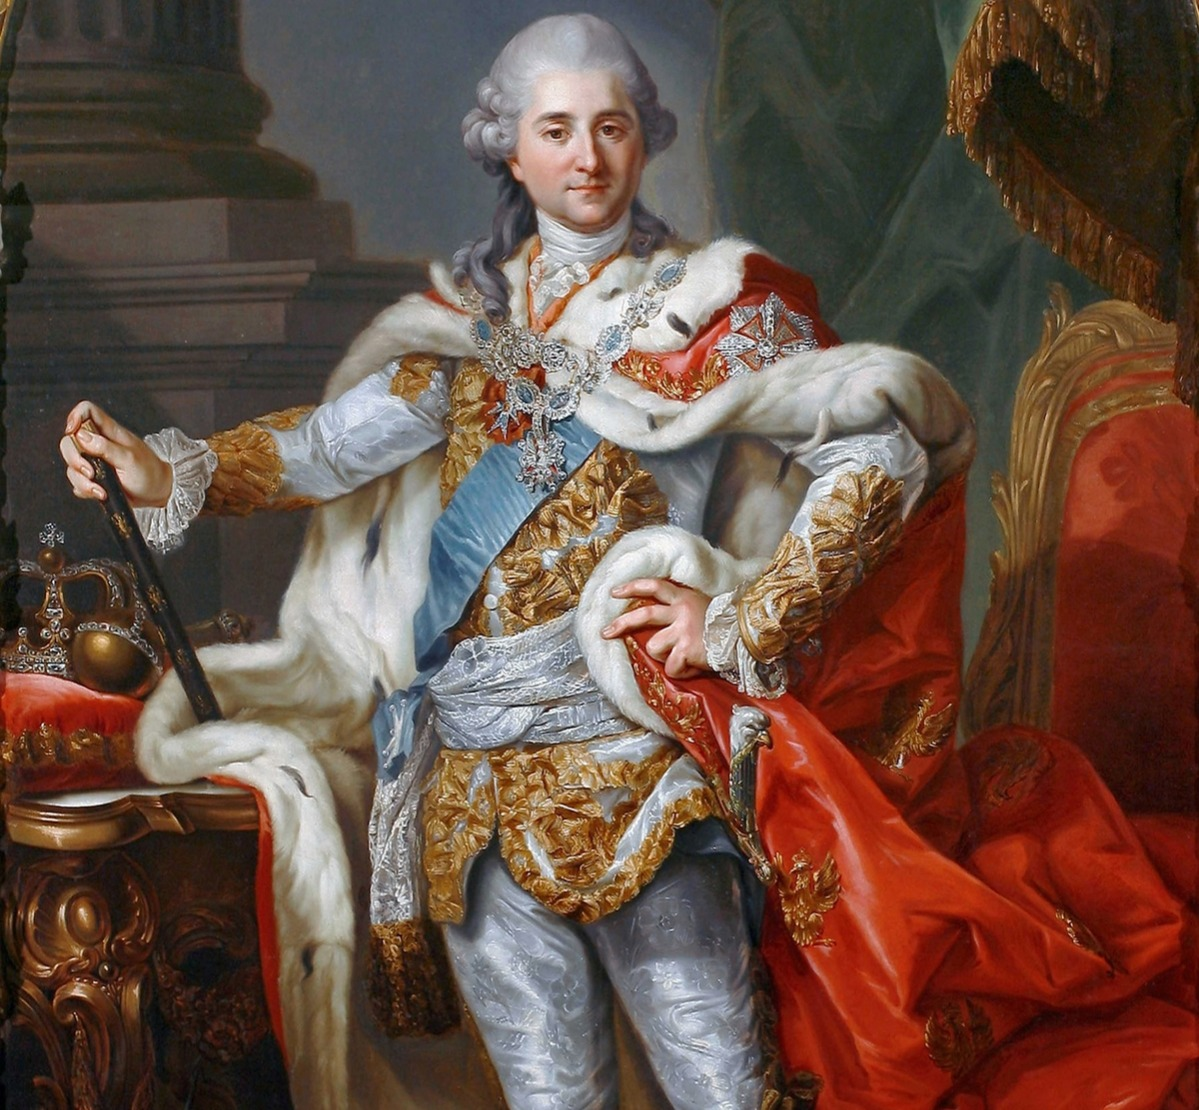 Stanislaw II August Poniatowski 1732 - 1798. King and Grand Duke of the Polish-Lithuanian Commonwealth (1764-95) painted by Marcello Bacciarelli